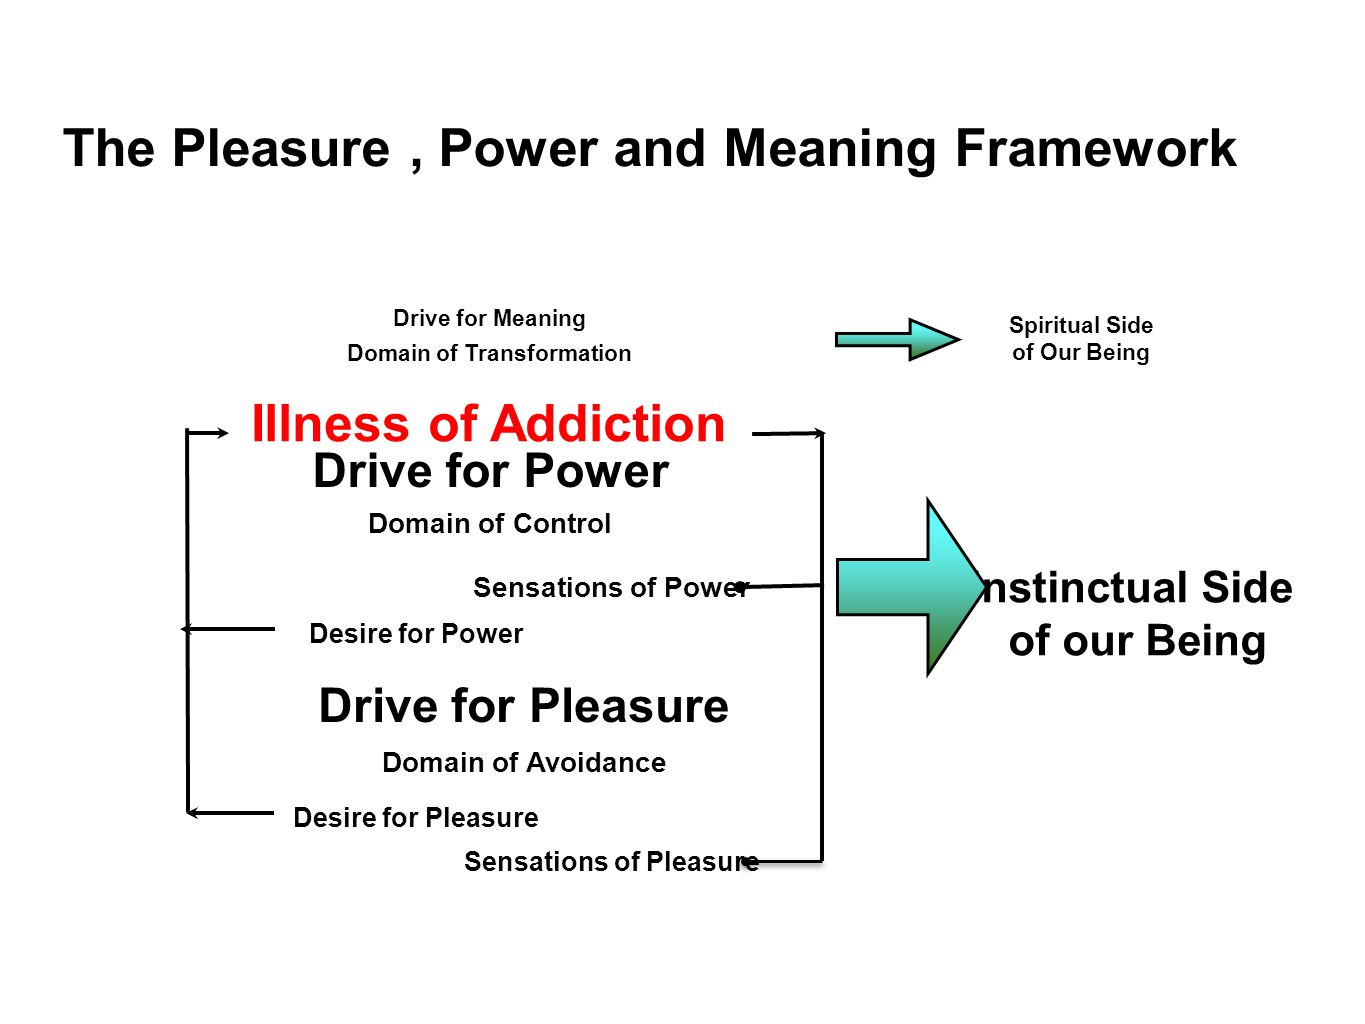 The Pleasure, Power and Meaning Framework Drive for Power Domain of Control Drive for Meaning Domain of Transformation Drive for Pleasure Domain of Avoidance Desire for Pleasure Desire for Power Sensations of Power Sensations of Pleasure Spiritual Side of Our Being Instinctual Side of our Being Illness of Addiction